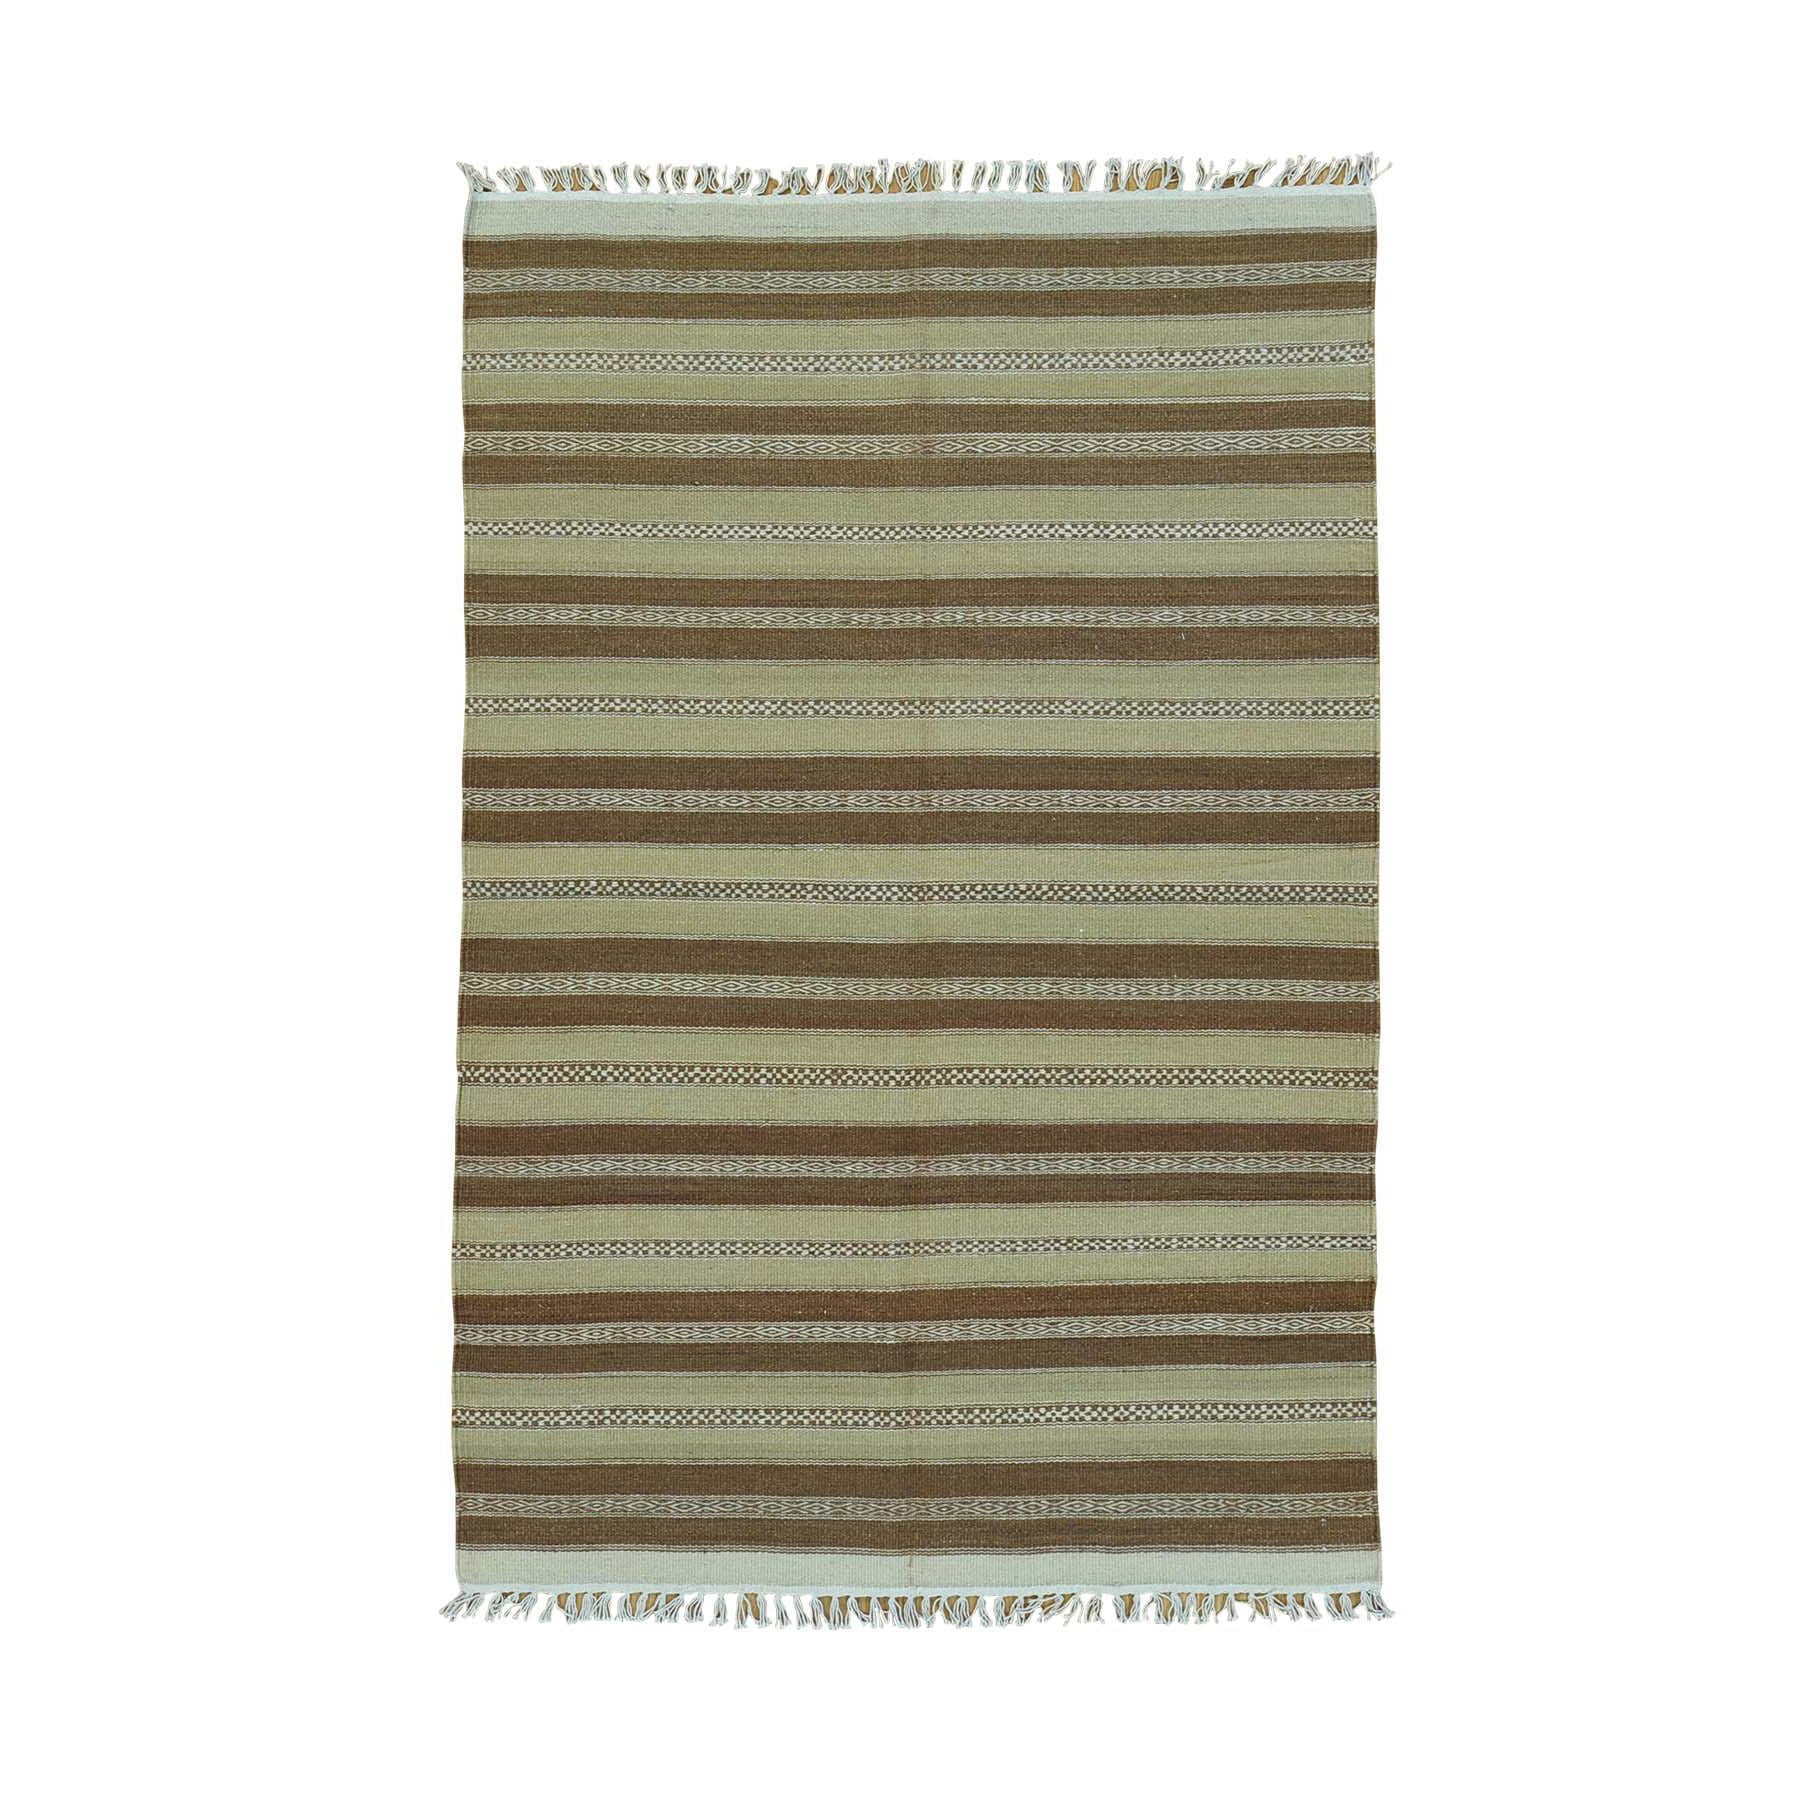 "Handmade Flat Weave Rectangle Rug > Design# SH30015 > Size: 3'-10"" x 5'-10"" [ONLINE ONLY]"